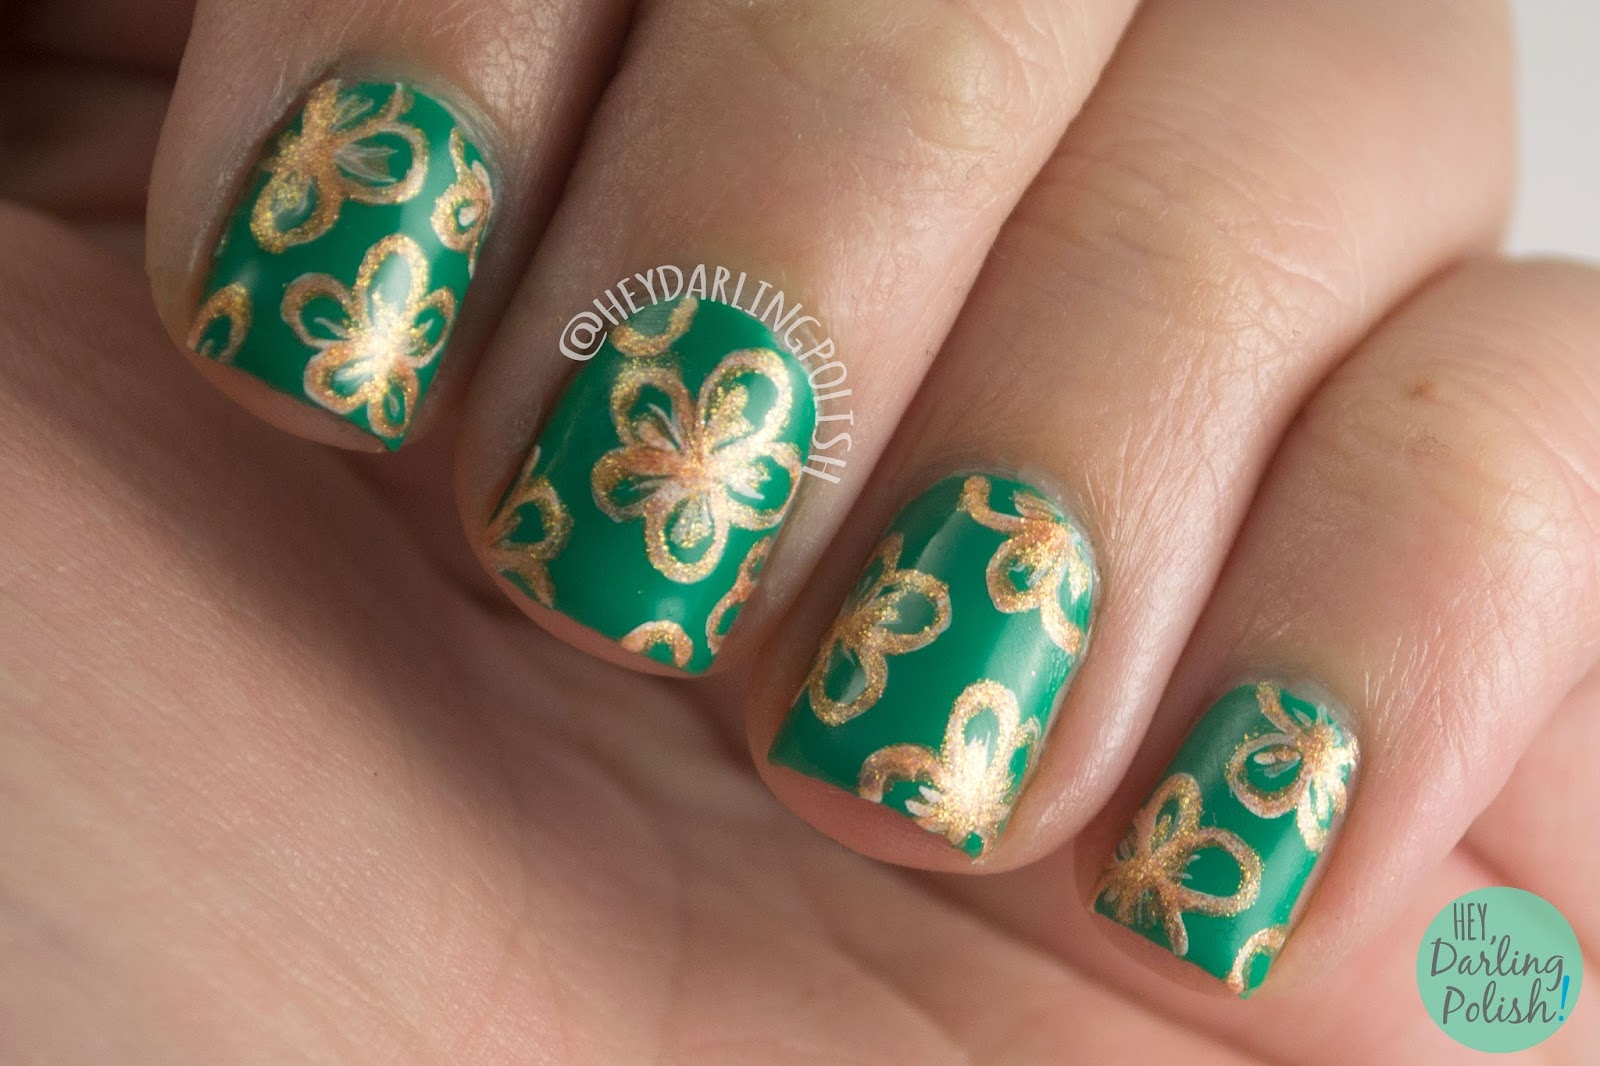 nails, nail art, nail polish, green, flowers, bronze, hey darling polish, the nail challenge collaborative, floral, tea party